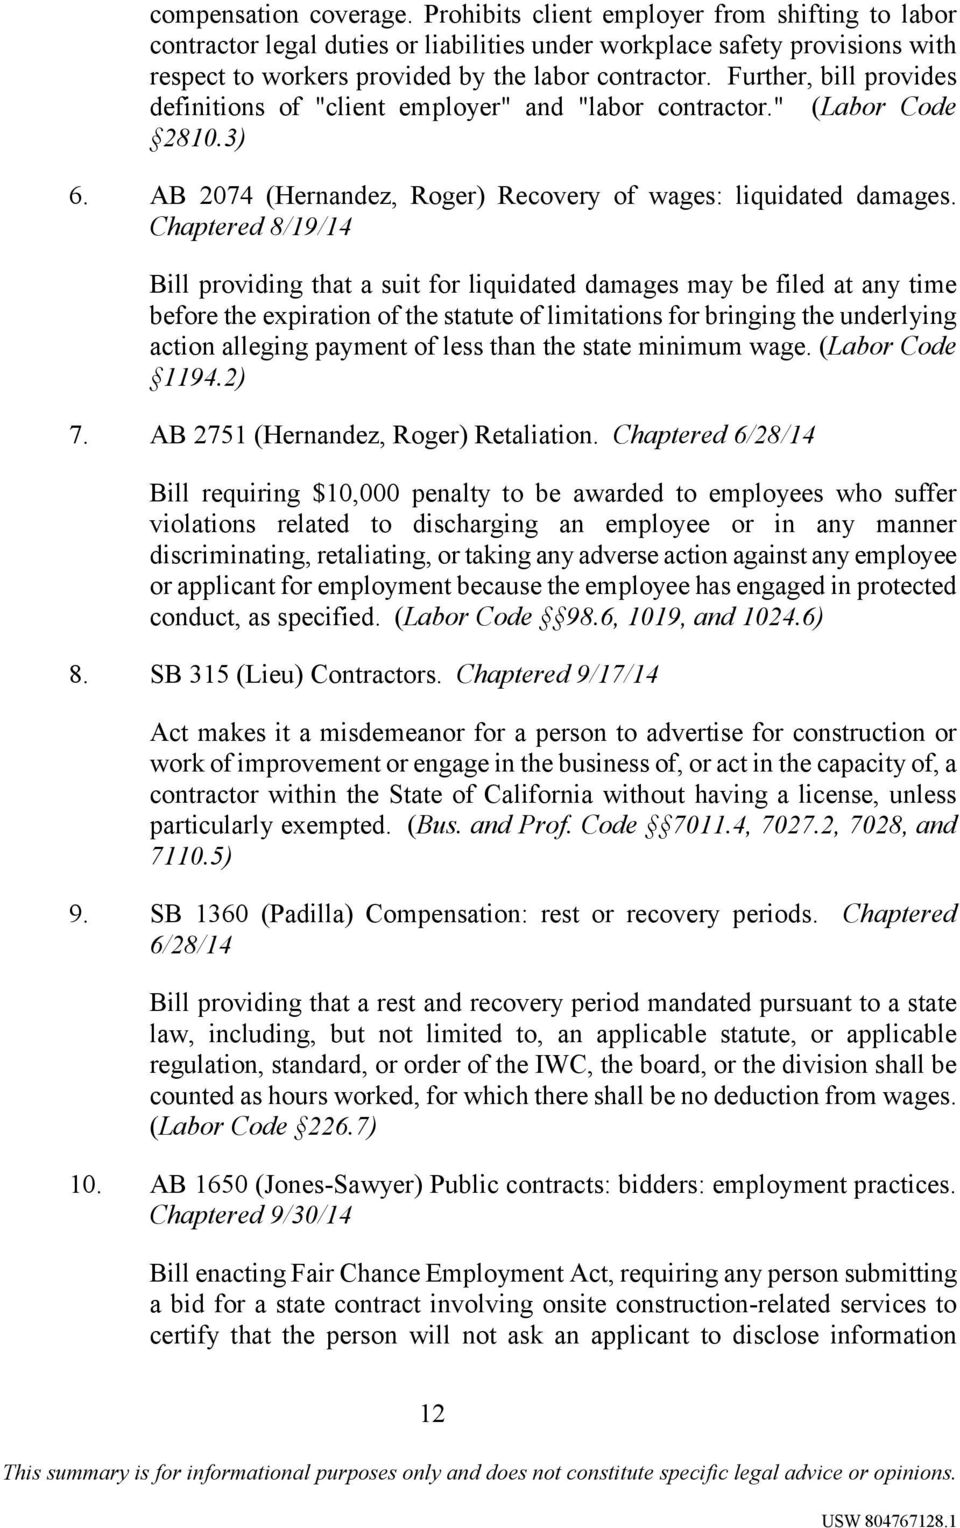 "Further, bill provides definitions of ""client employer"" and ""labor contractor."" (Labor Code 2810.3) 6. AB 2074 (Hernandez, Roger) Recovery of wages: liquidated damages."